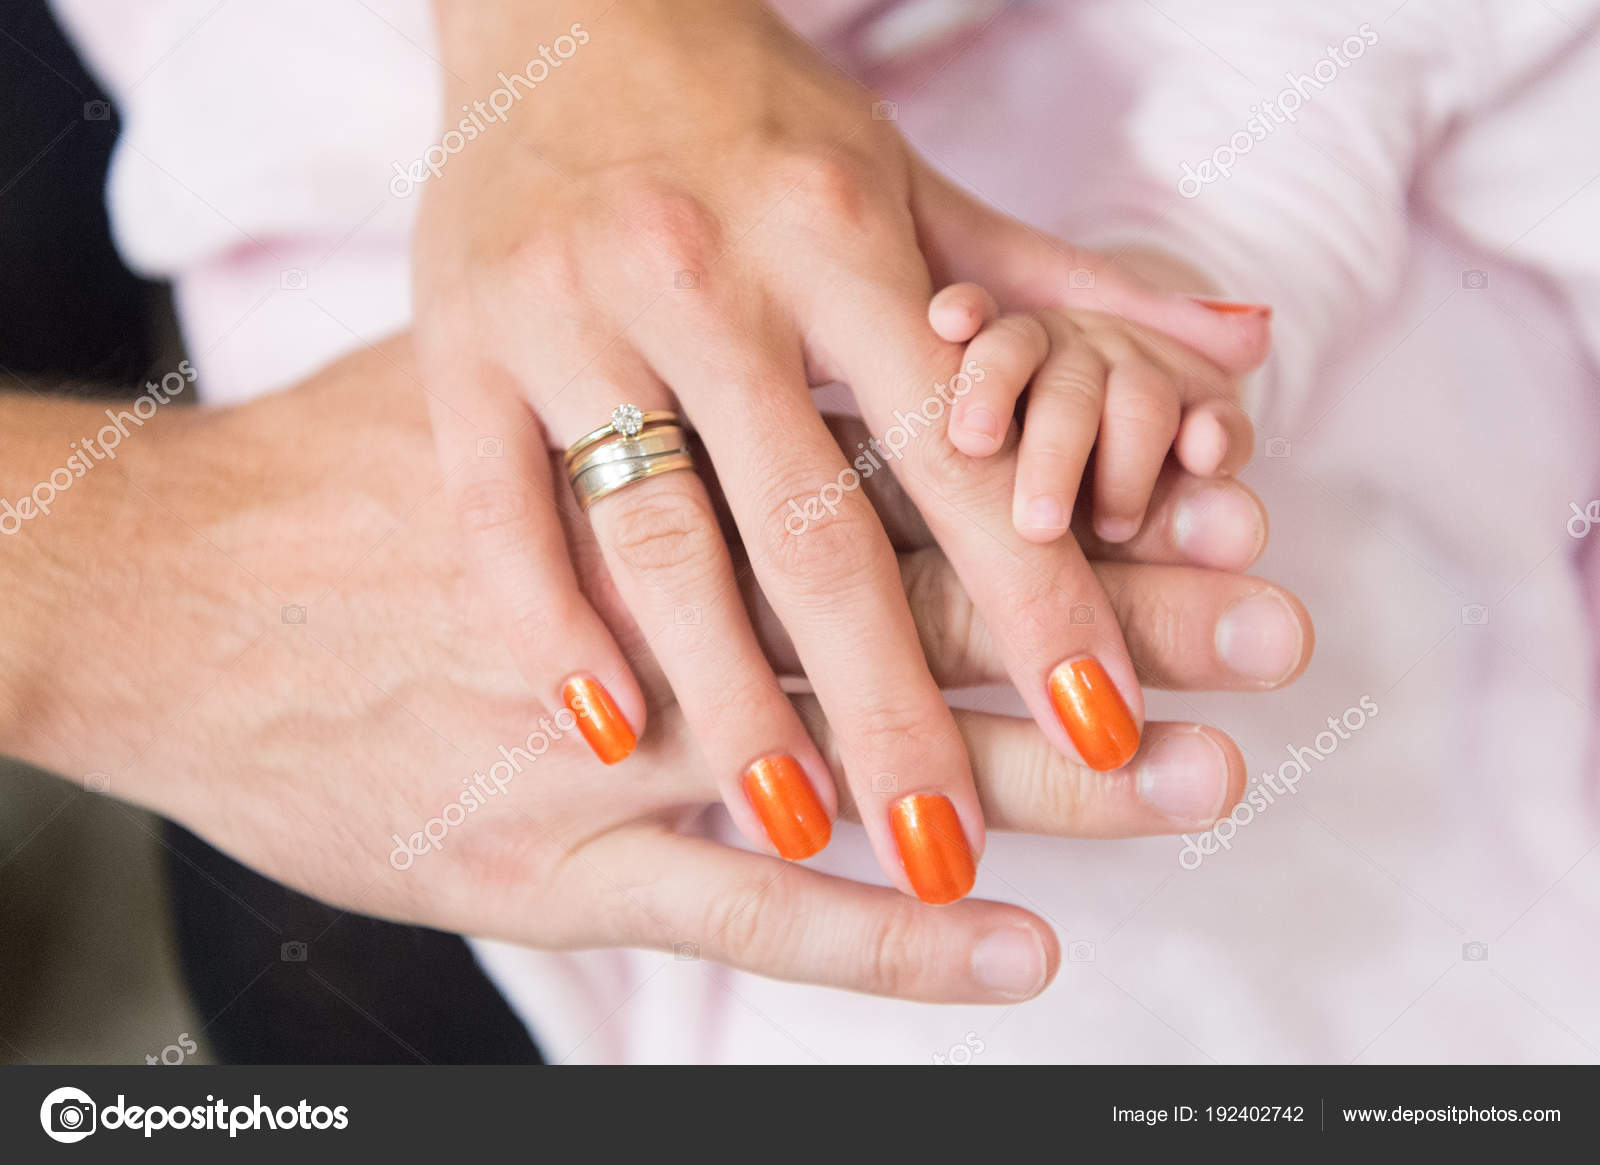 Family Hands Of Mother Father And Little Baby Unity Support And